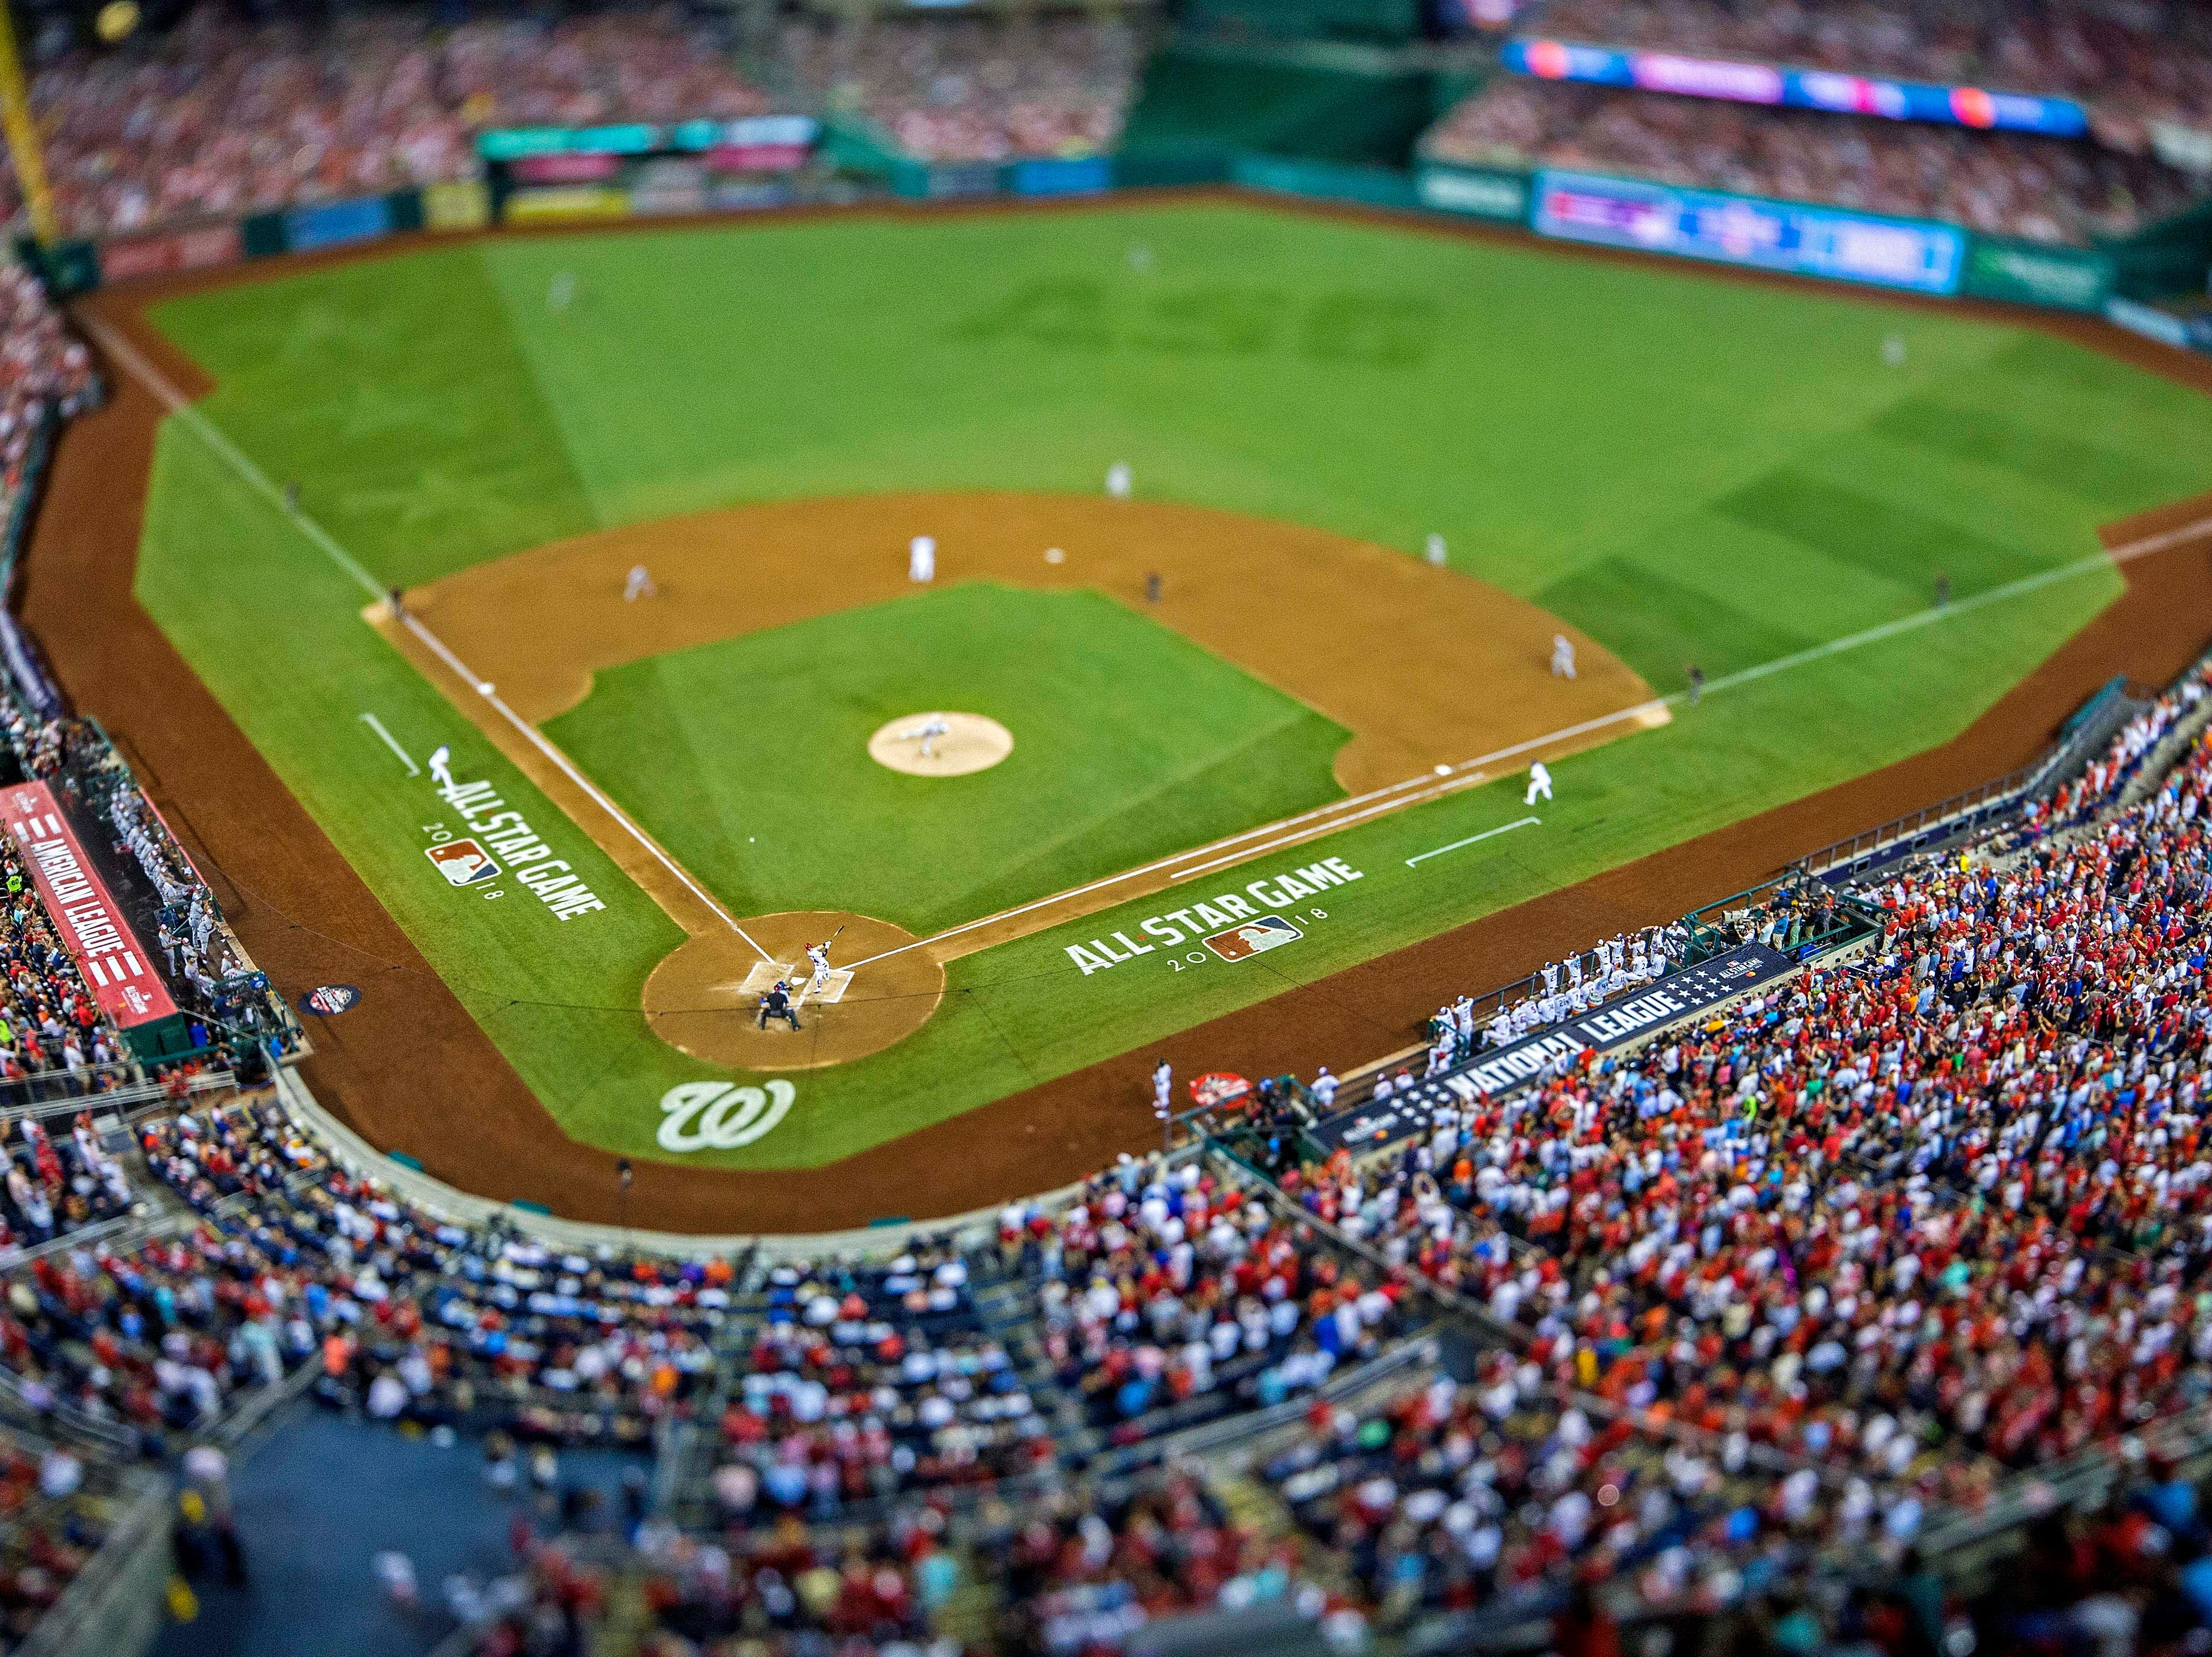 July 17, 2018: An overall view of the field during the second inning in the 2018 MLB All Star Game at Nationals Ballpark.